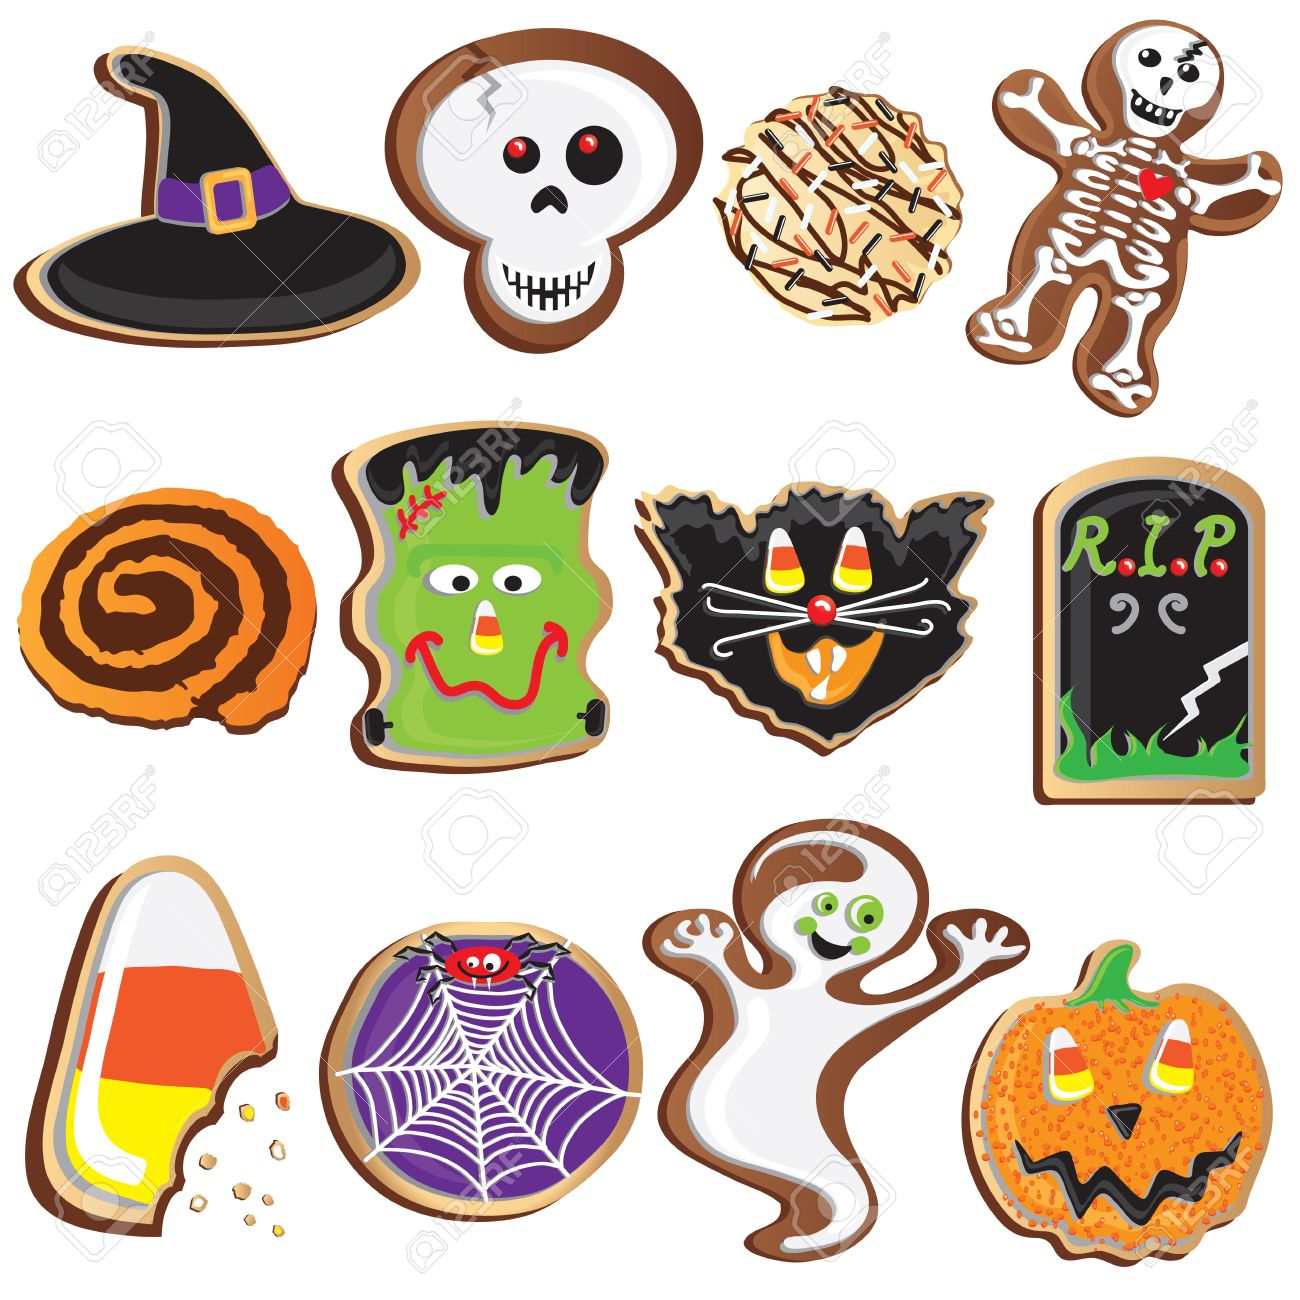 Cute Halloween Cookies Clipart Elements and Icons.